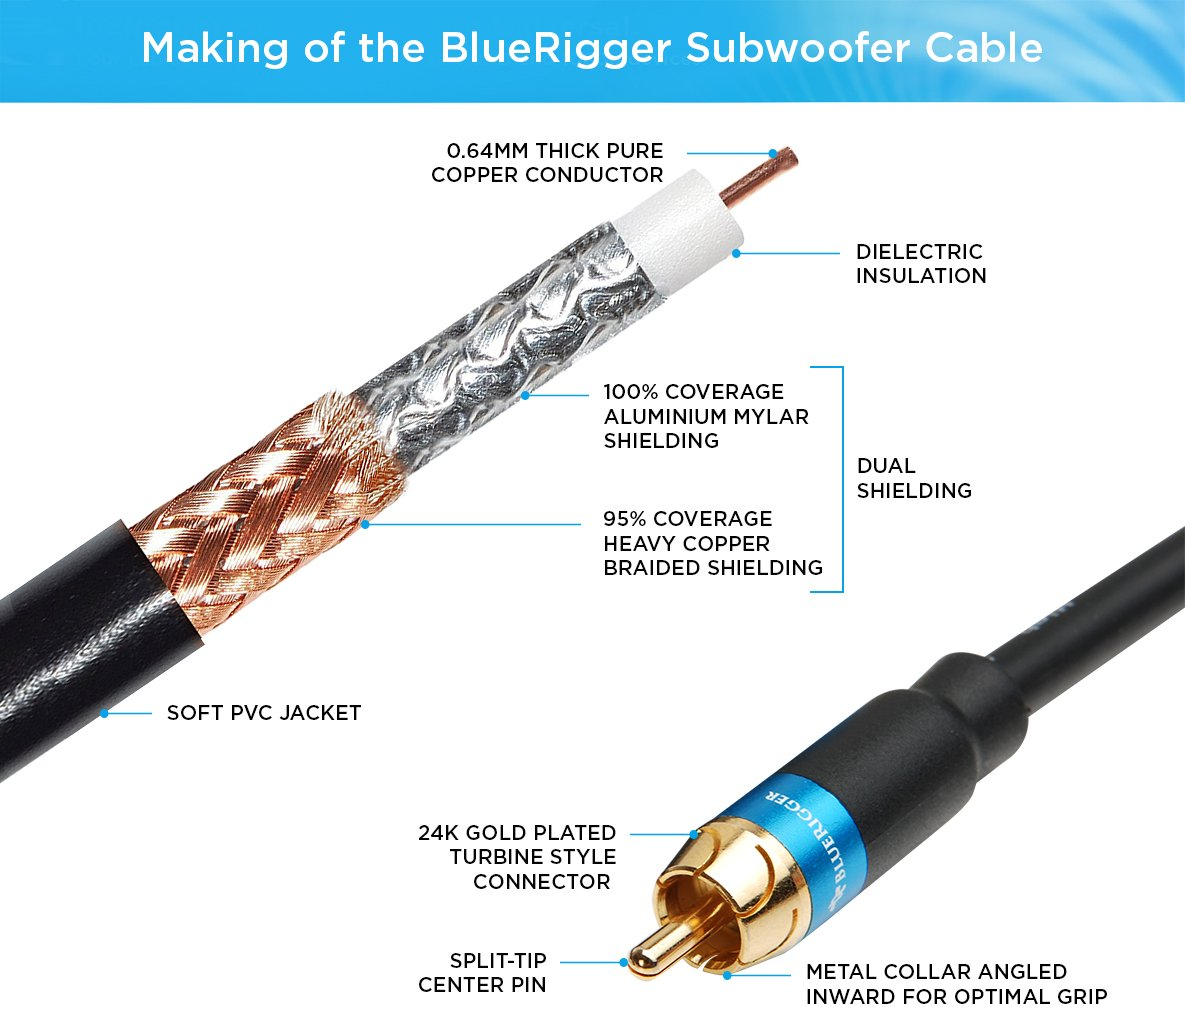 BlueRigger Cable de Audio RCA para Subwoofer Doble blindaje y Conectores enchapados en Oro: Amazon.es: Electrónica